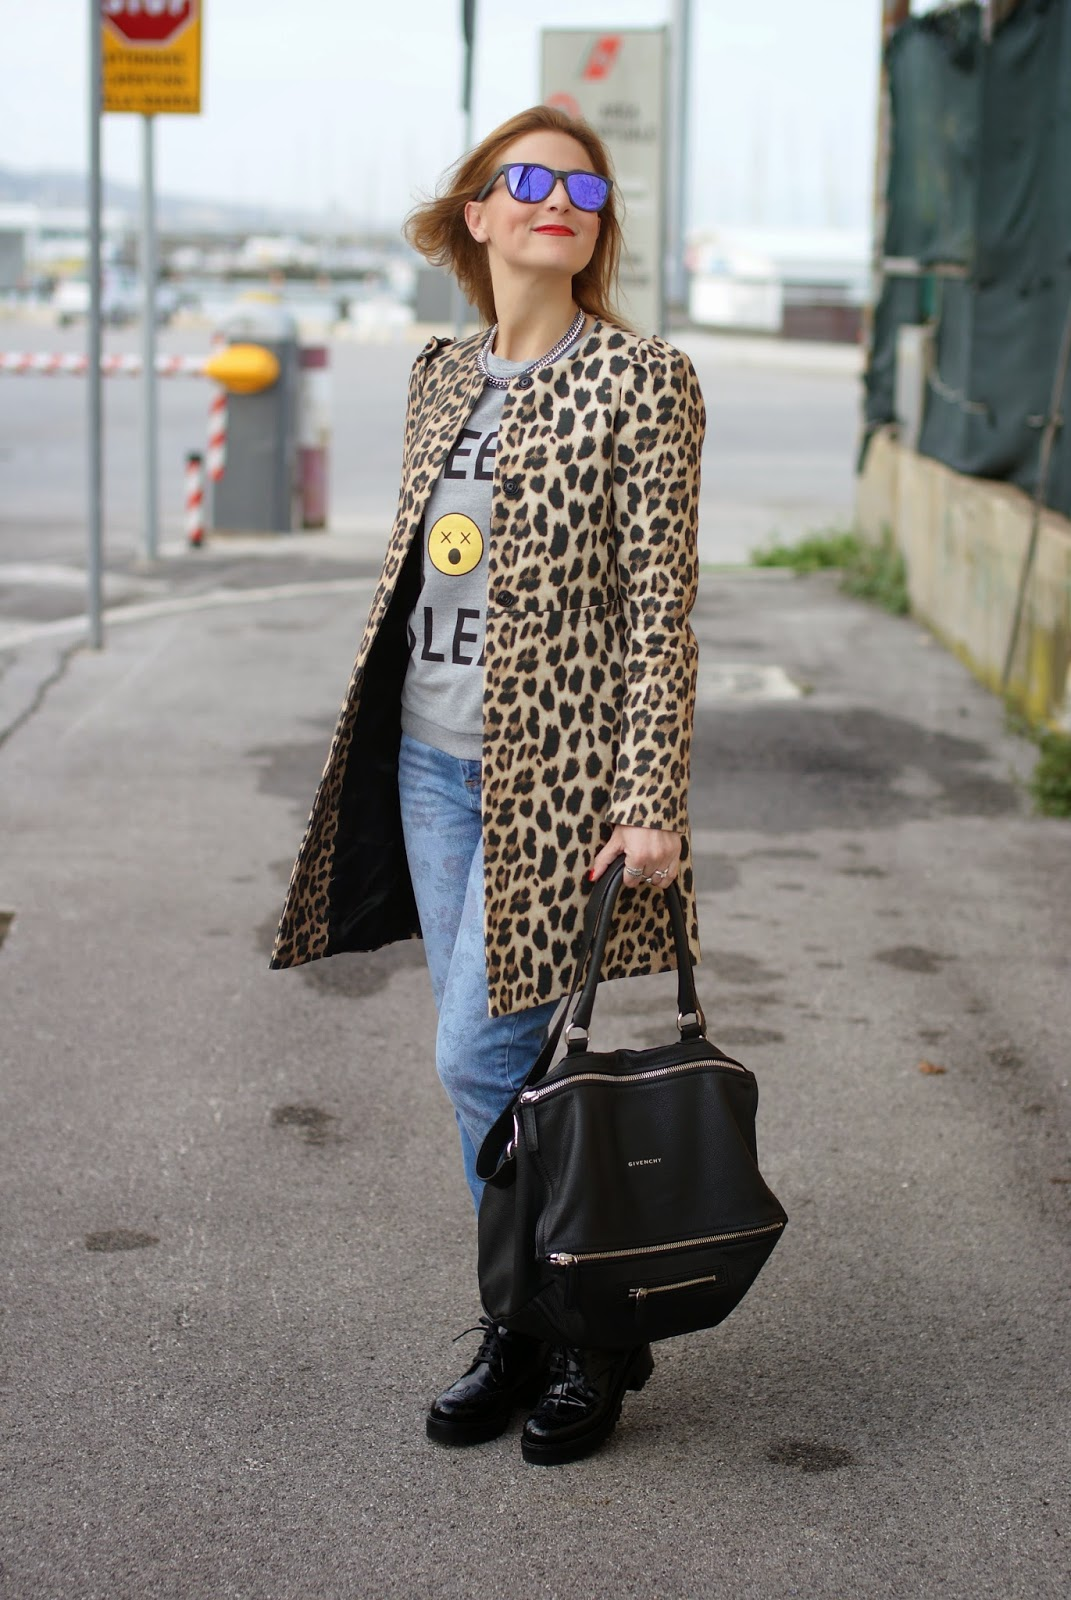 Zara leopard coat, Luca barra gioielli, Givenchy Pandora bag, Daniel Wellington Classic Sheffield watch, Fashion and Cookies, fashion blogger